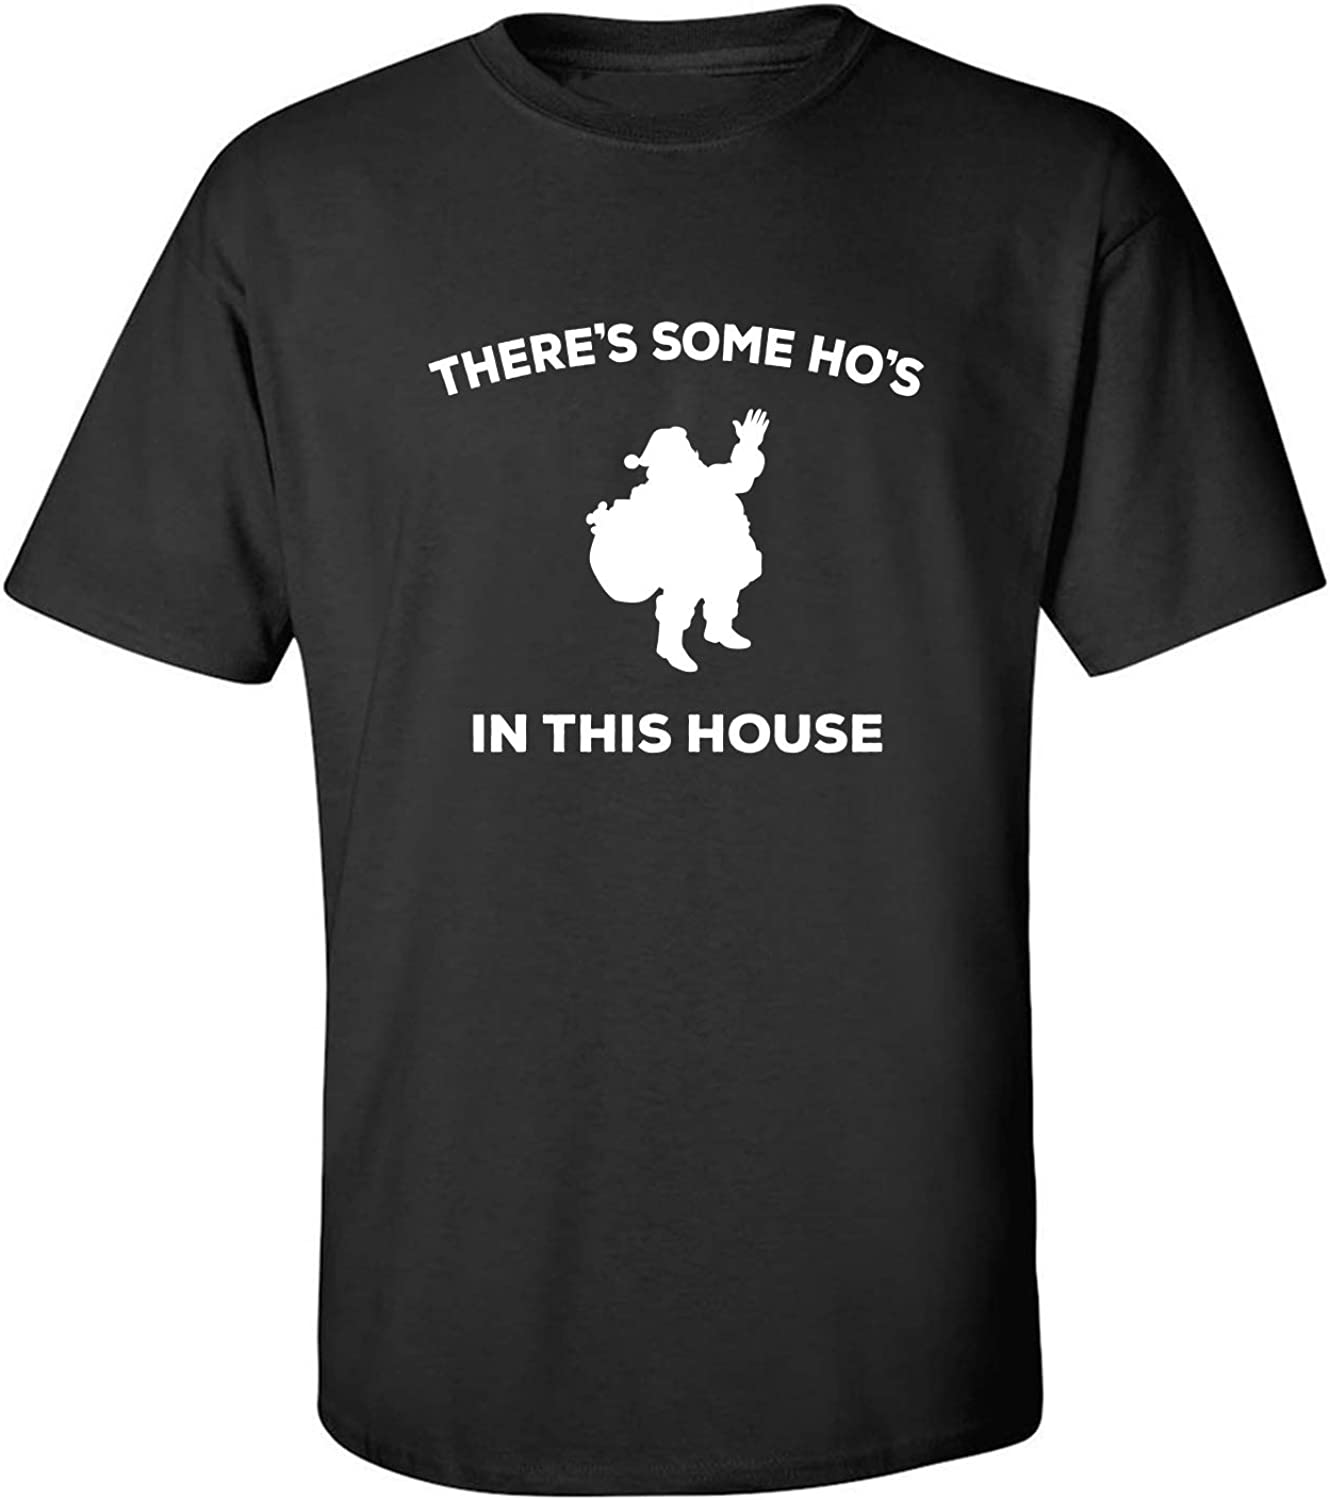 There's Some Ho's in This House Adult T-Shirt in Black - XXXX-Large